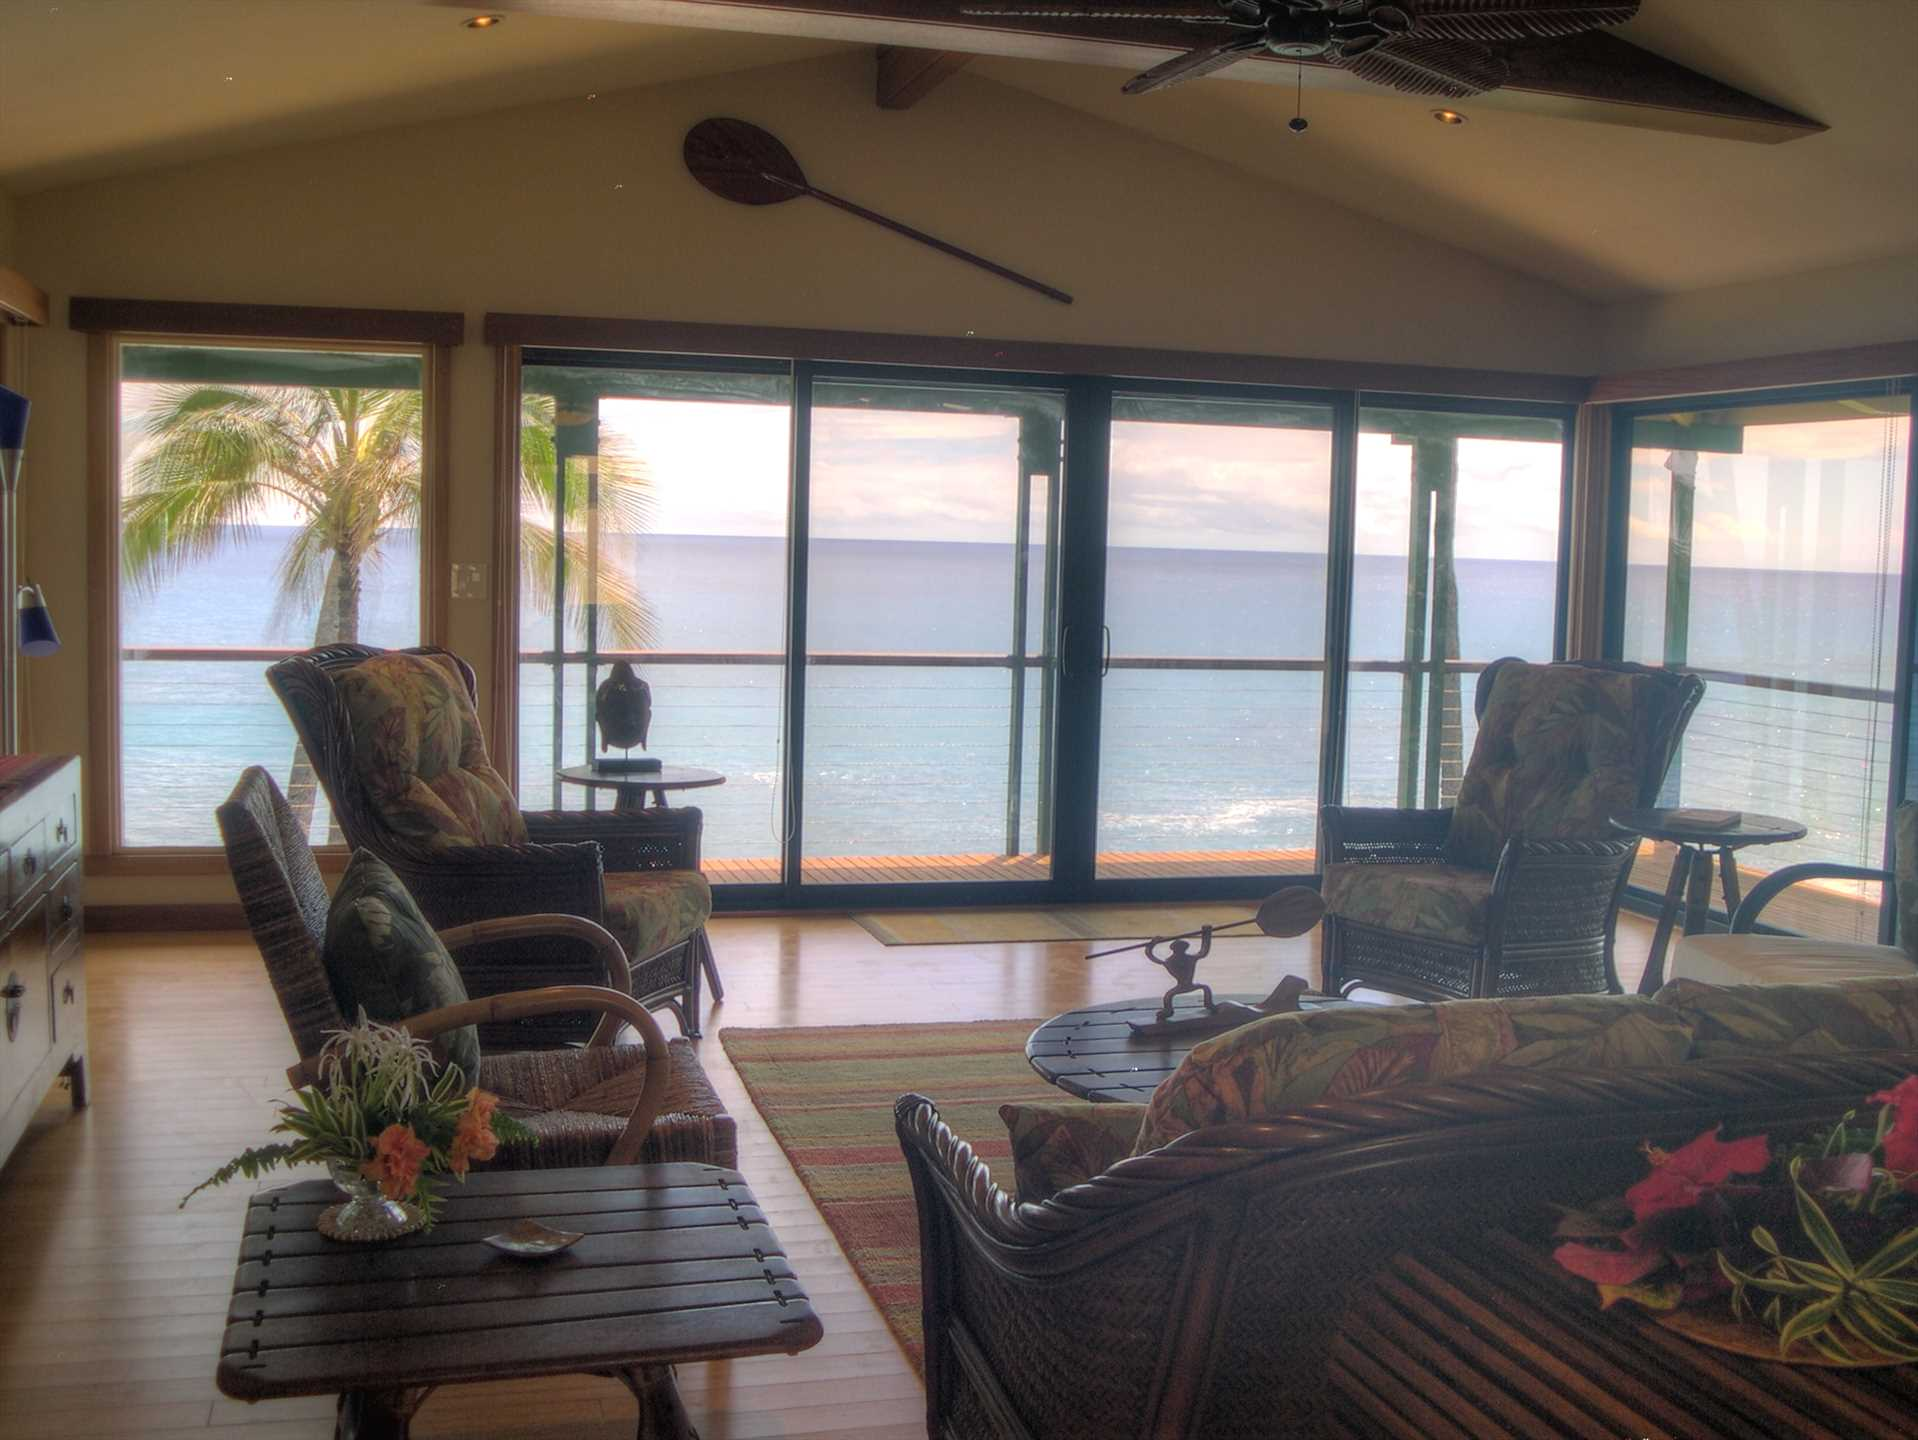 Living room showing wrap around view of ocean